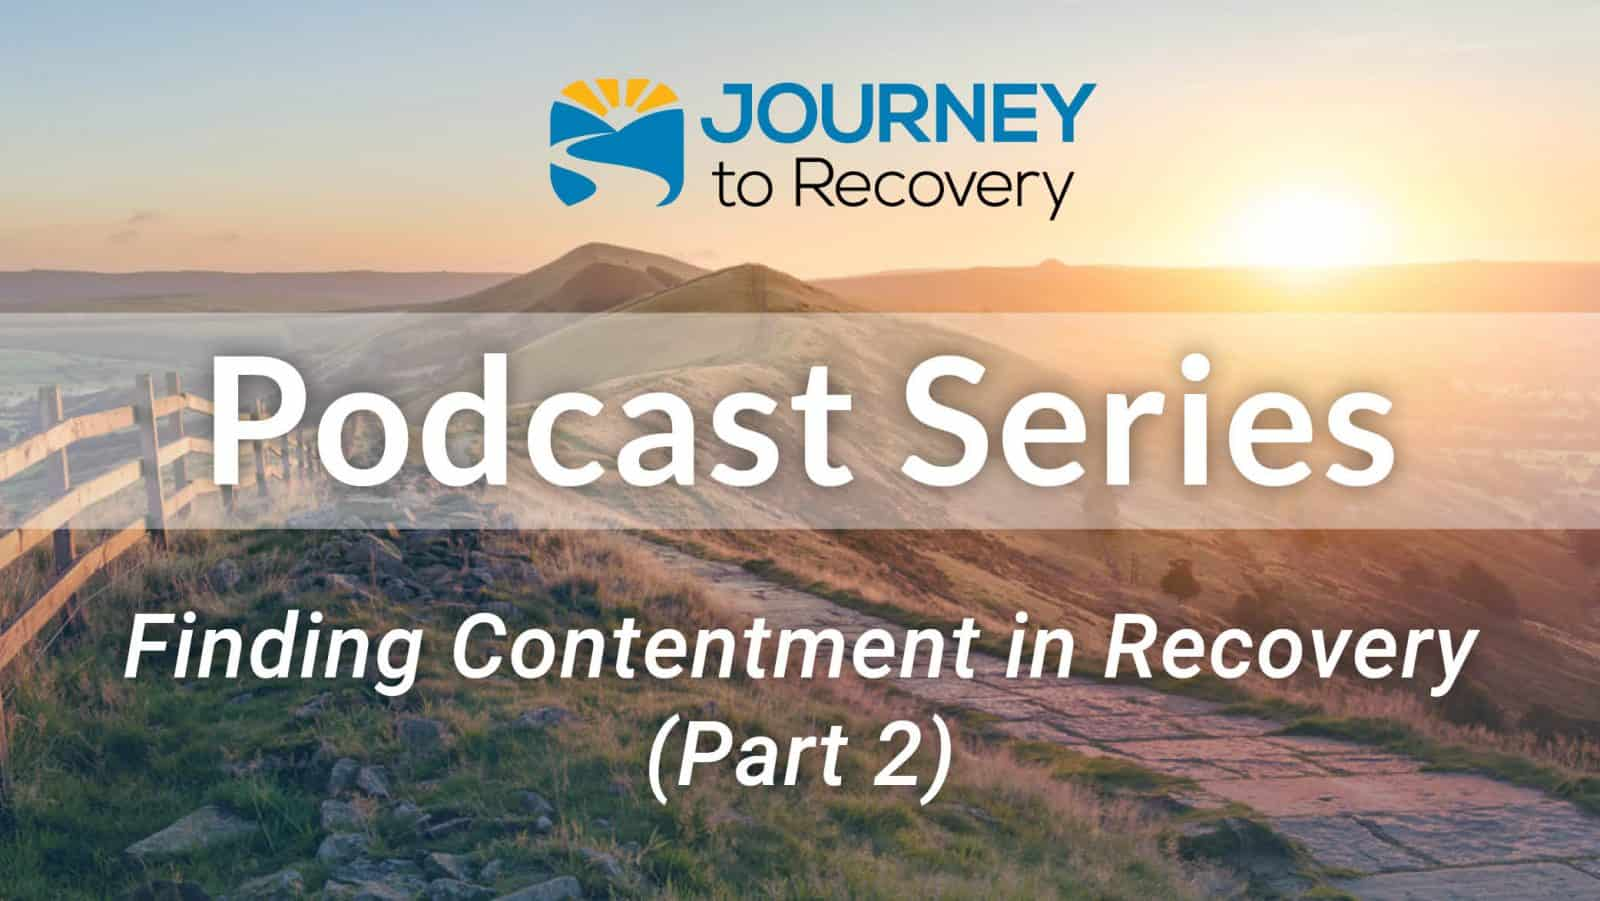 Finding Contentment in Recovery (Part 2)